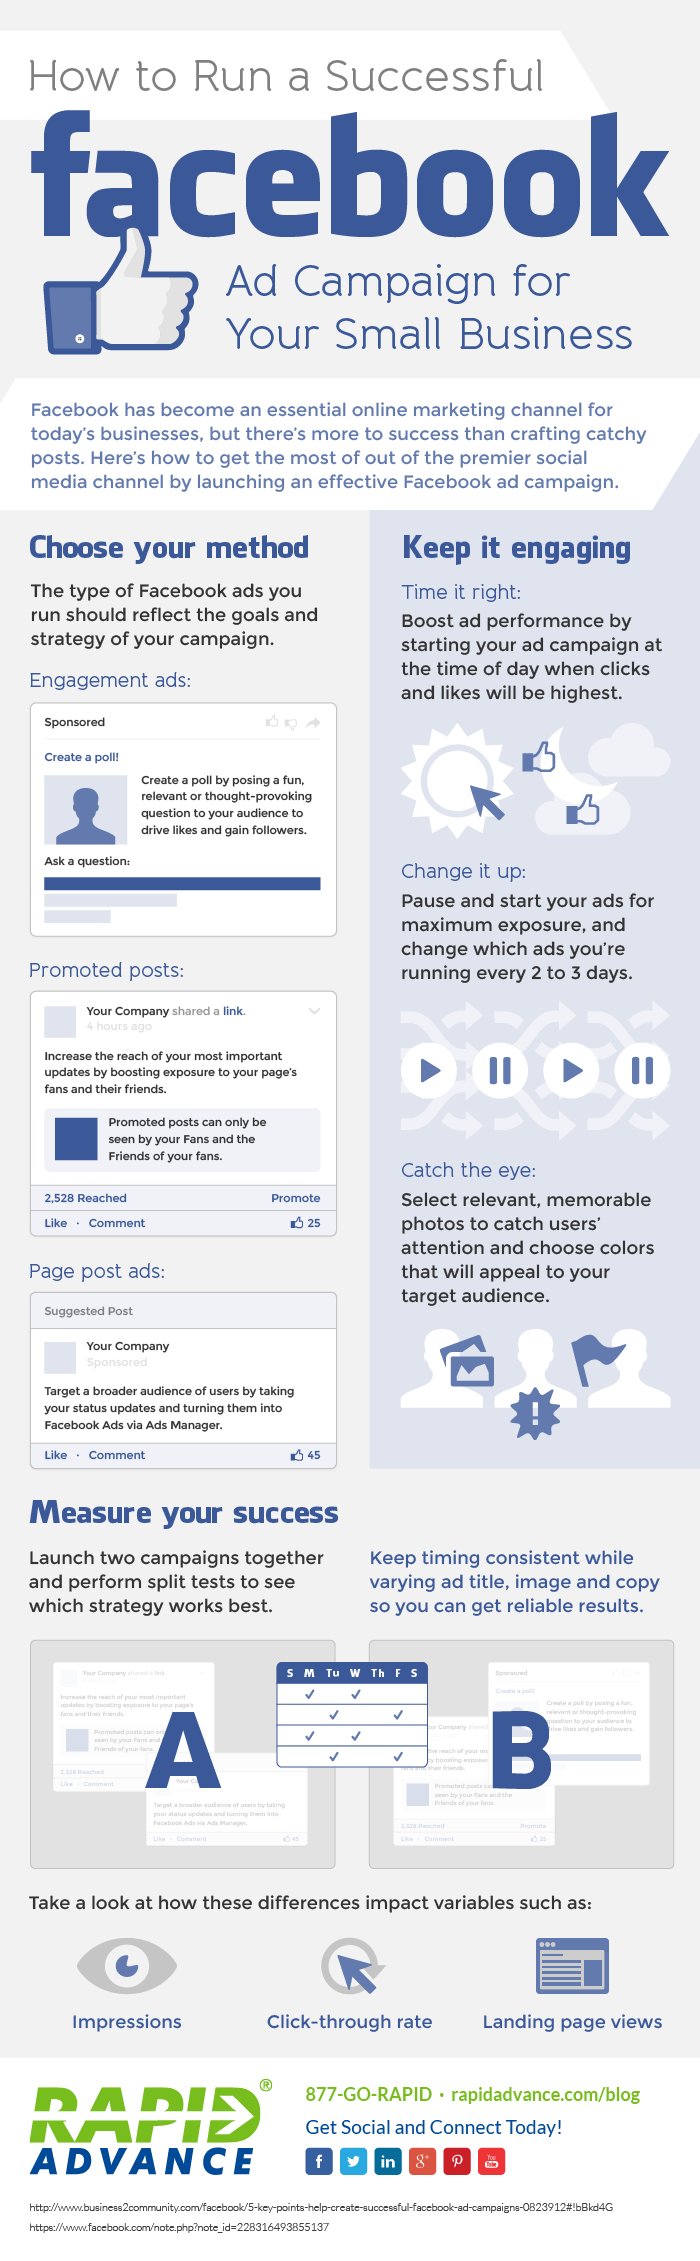 How to Run a Successful Facebook Ads Campaign infographic